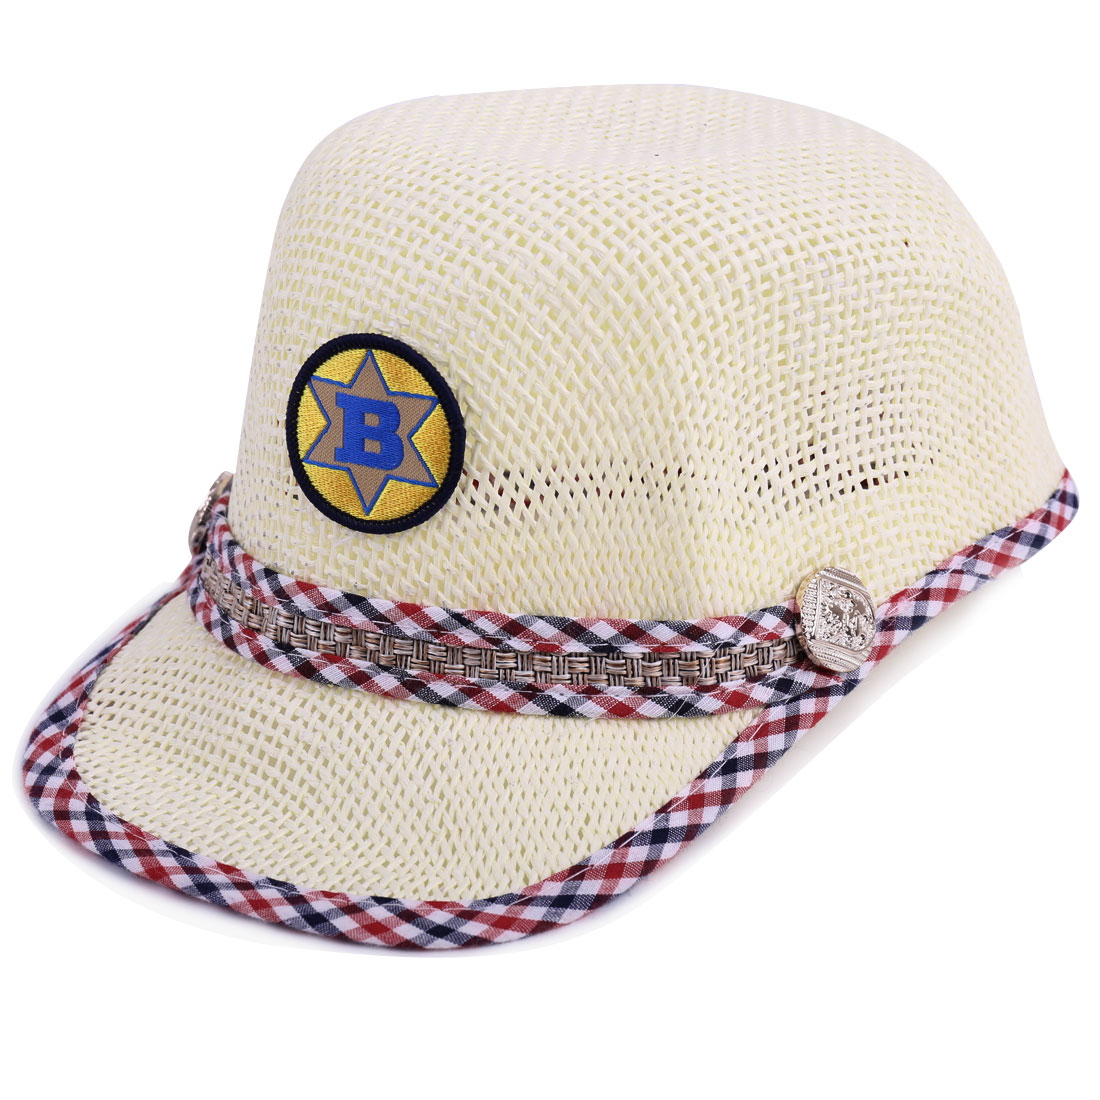 Kids Hollow Out Pliaids Detail Letter Embellished Cap Cream